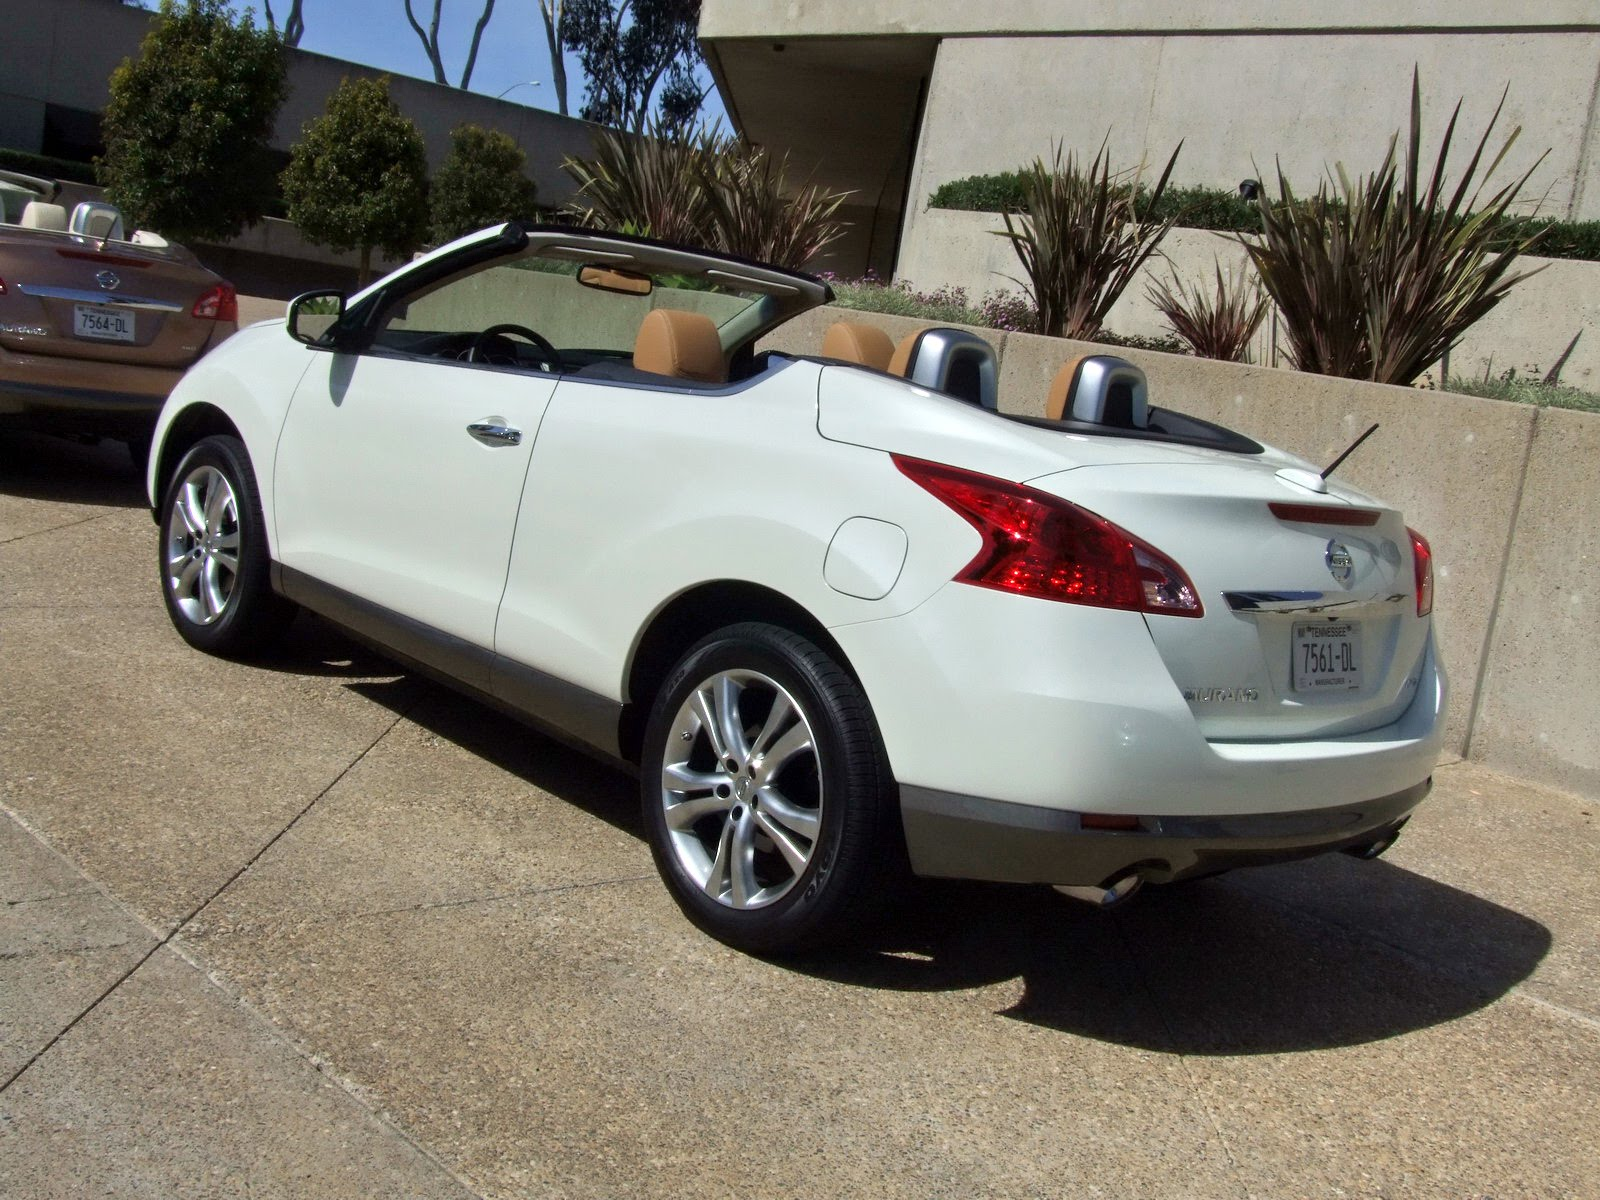 2010 - [Nissan] Murano CrossCabriolet - Page 4 2011-Nissan-Murano-CC-TD-635